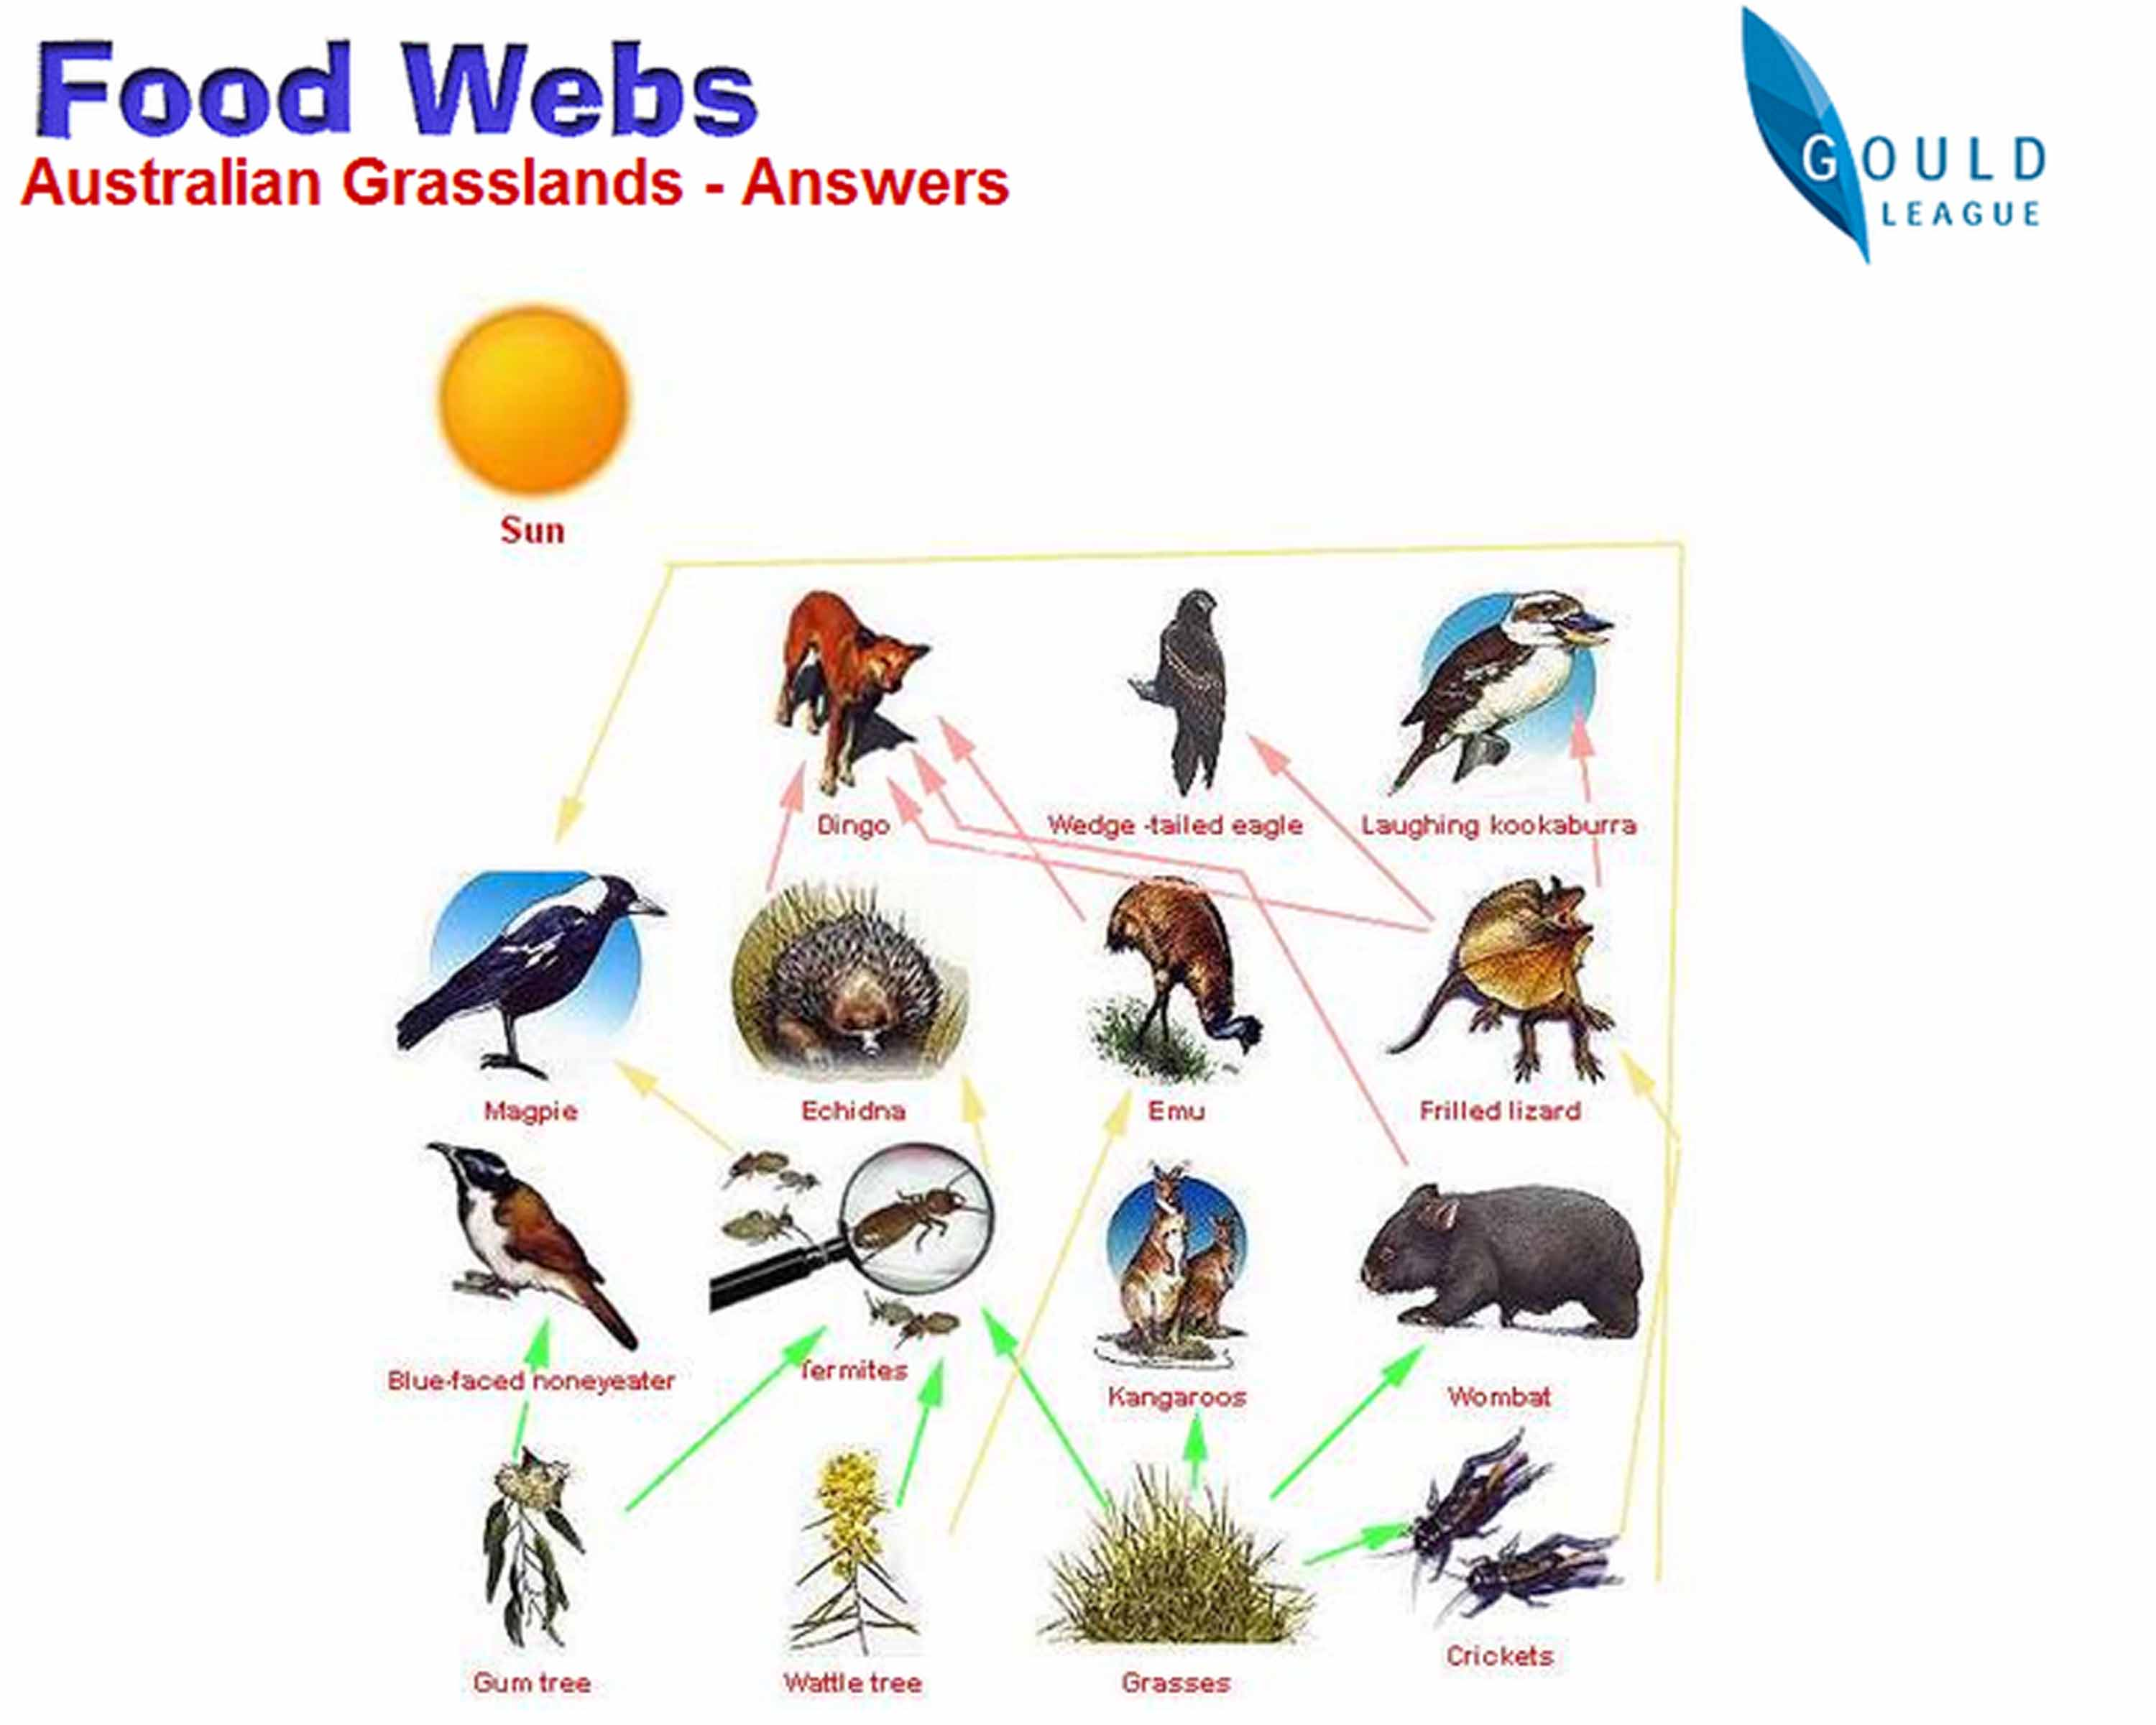 Post 6 Food Webs